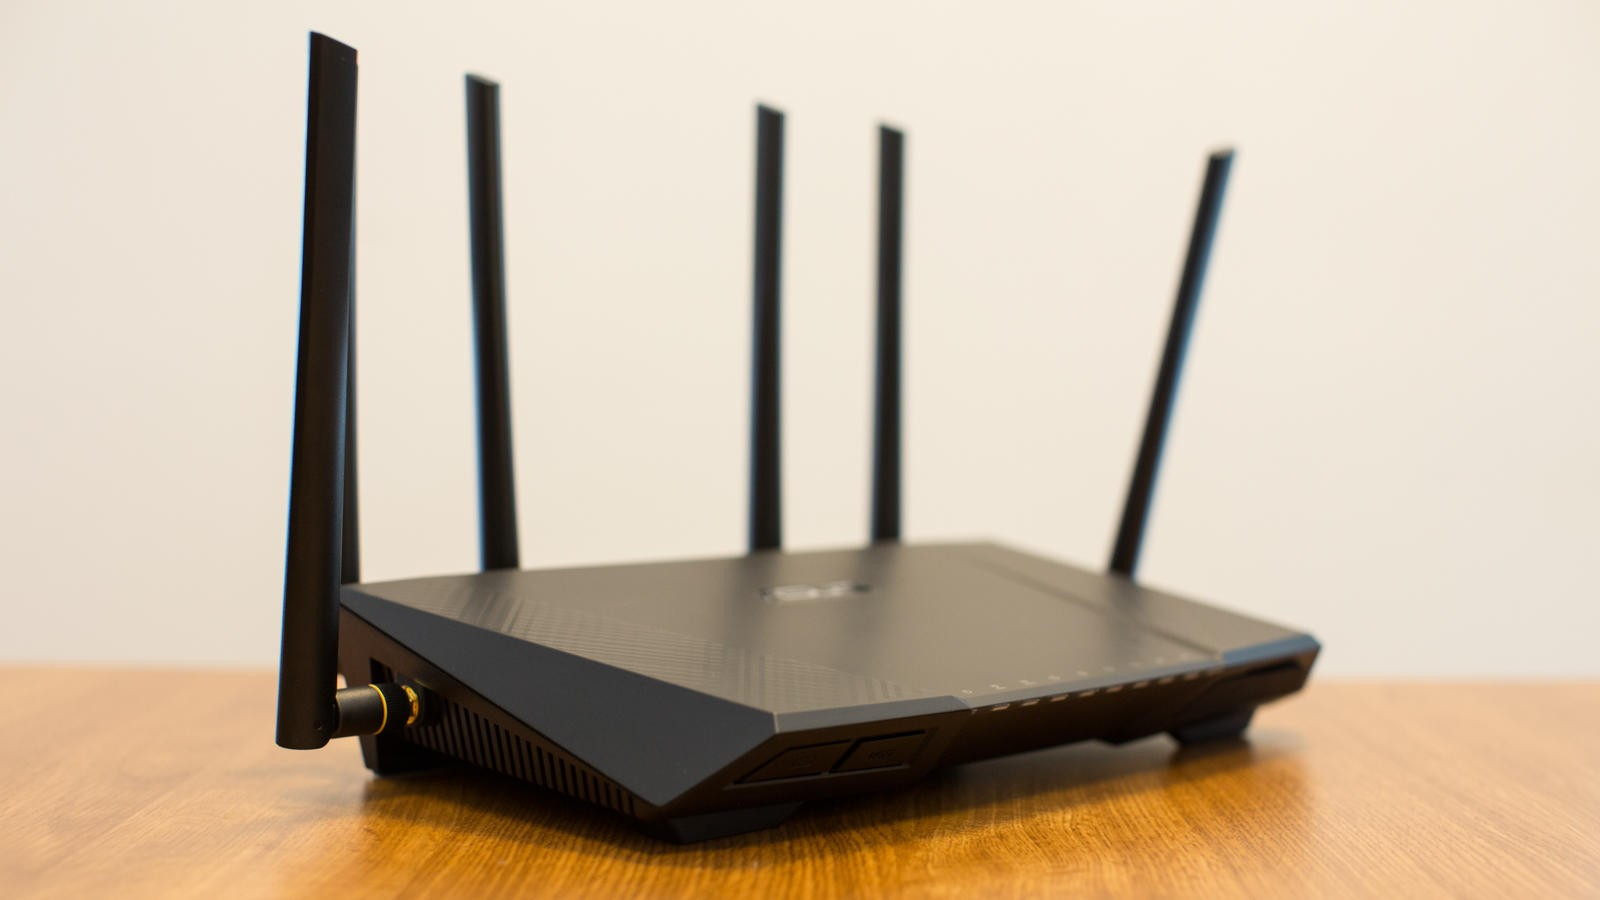 ASUS RT-AC3200 Router Receives Firmware 3.0.0.4.378.9313 - Update Now